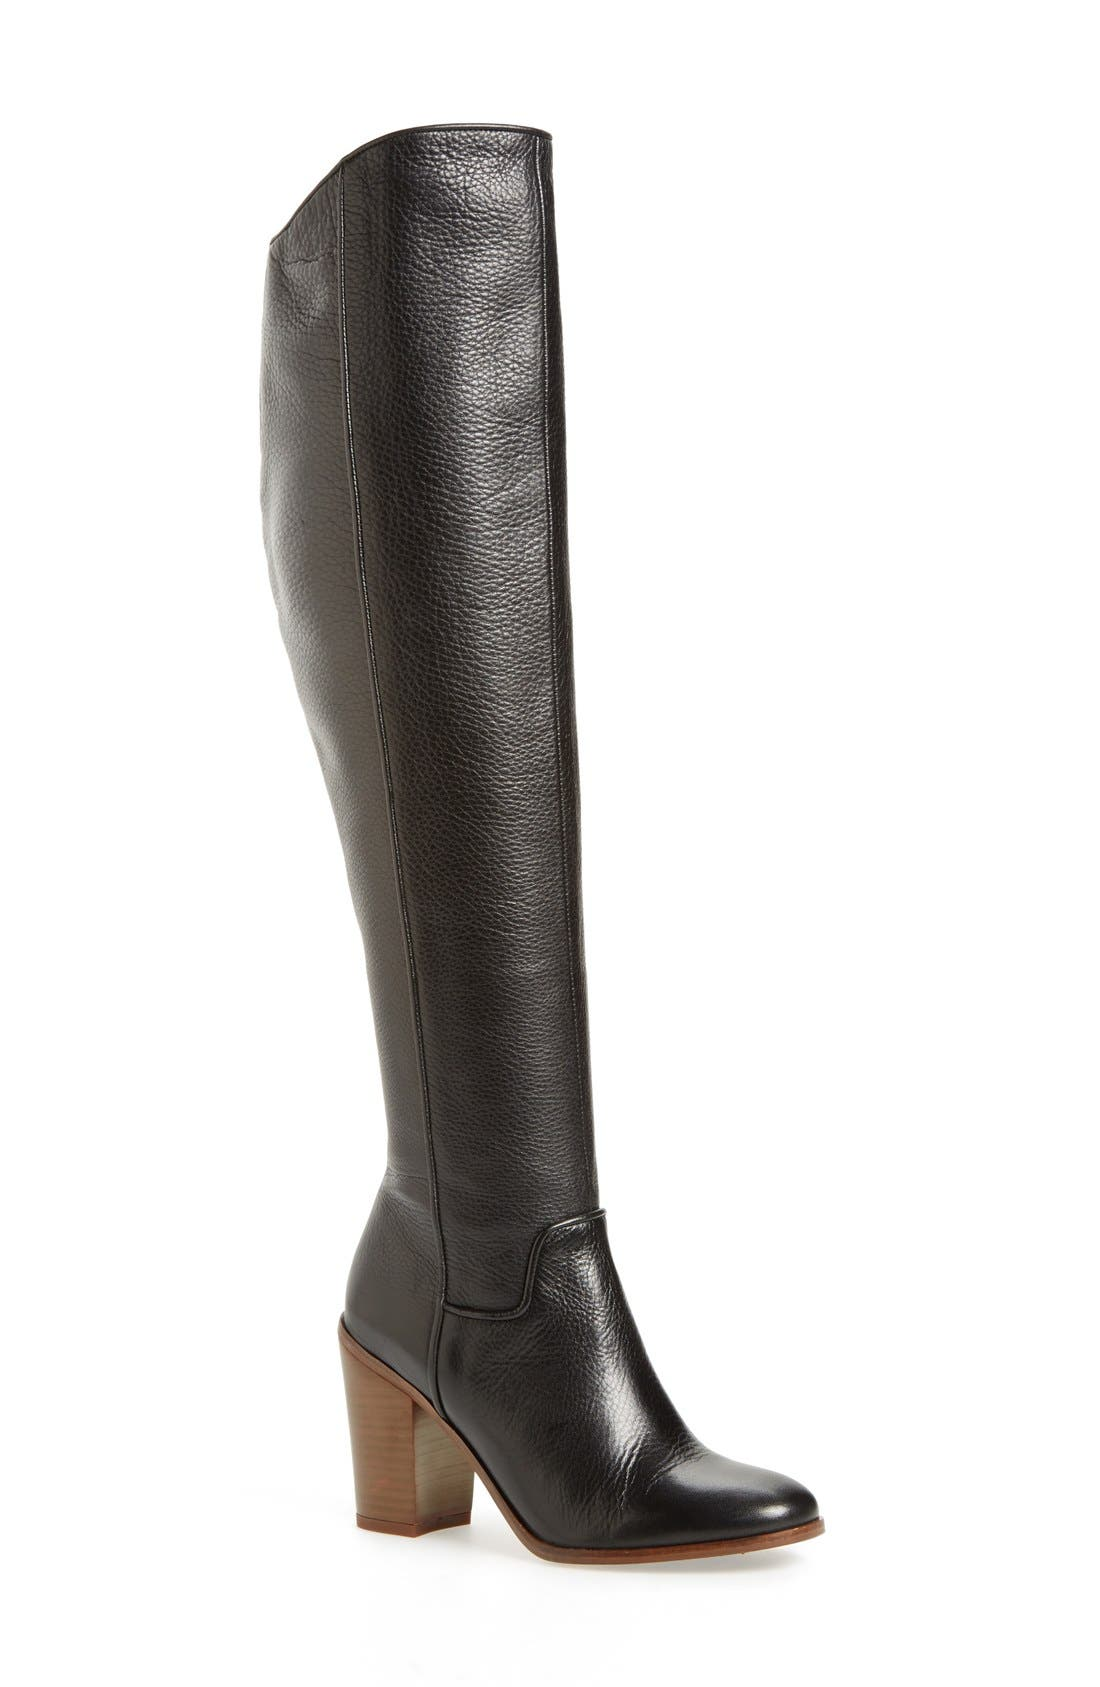 Alternate Image 1 Selected - SARTO by Franco Sarto 'Faye' Over the Knee Boot (Women)